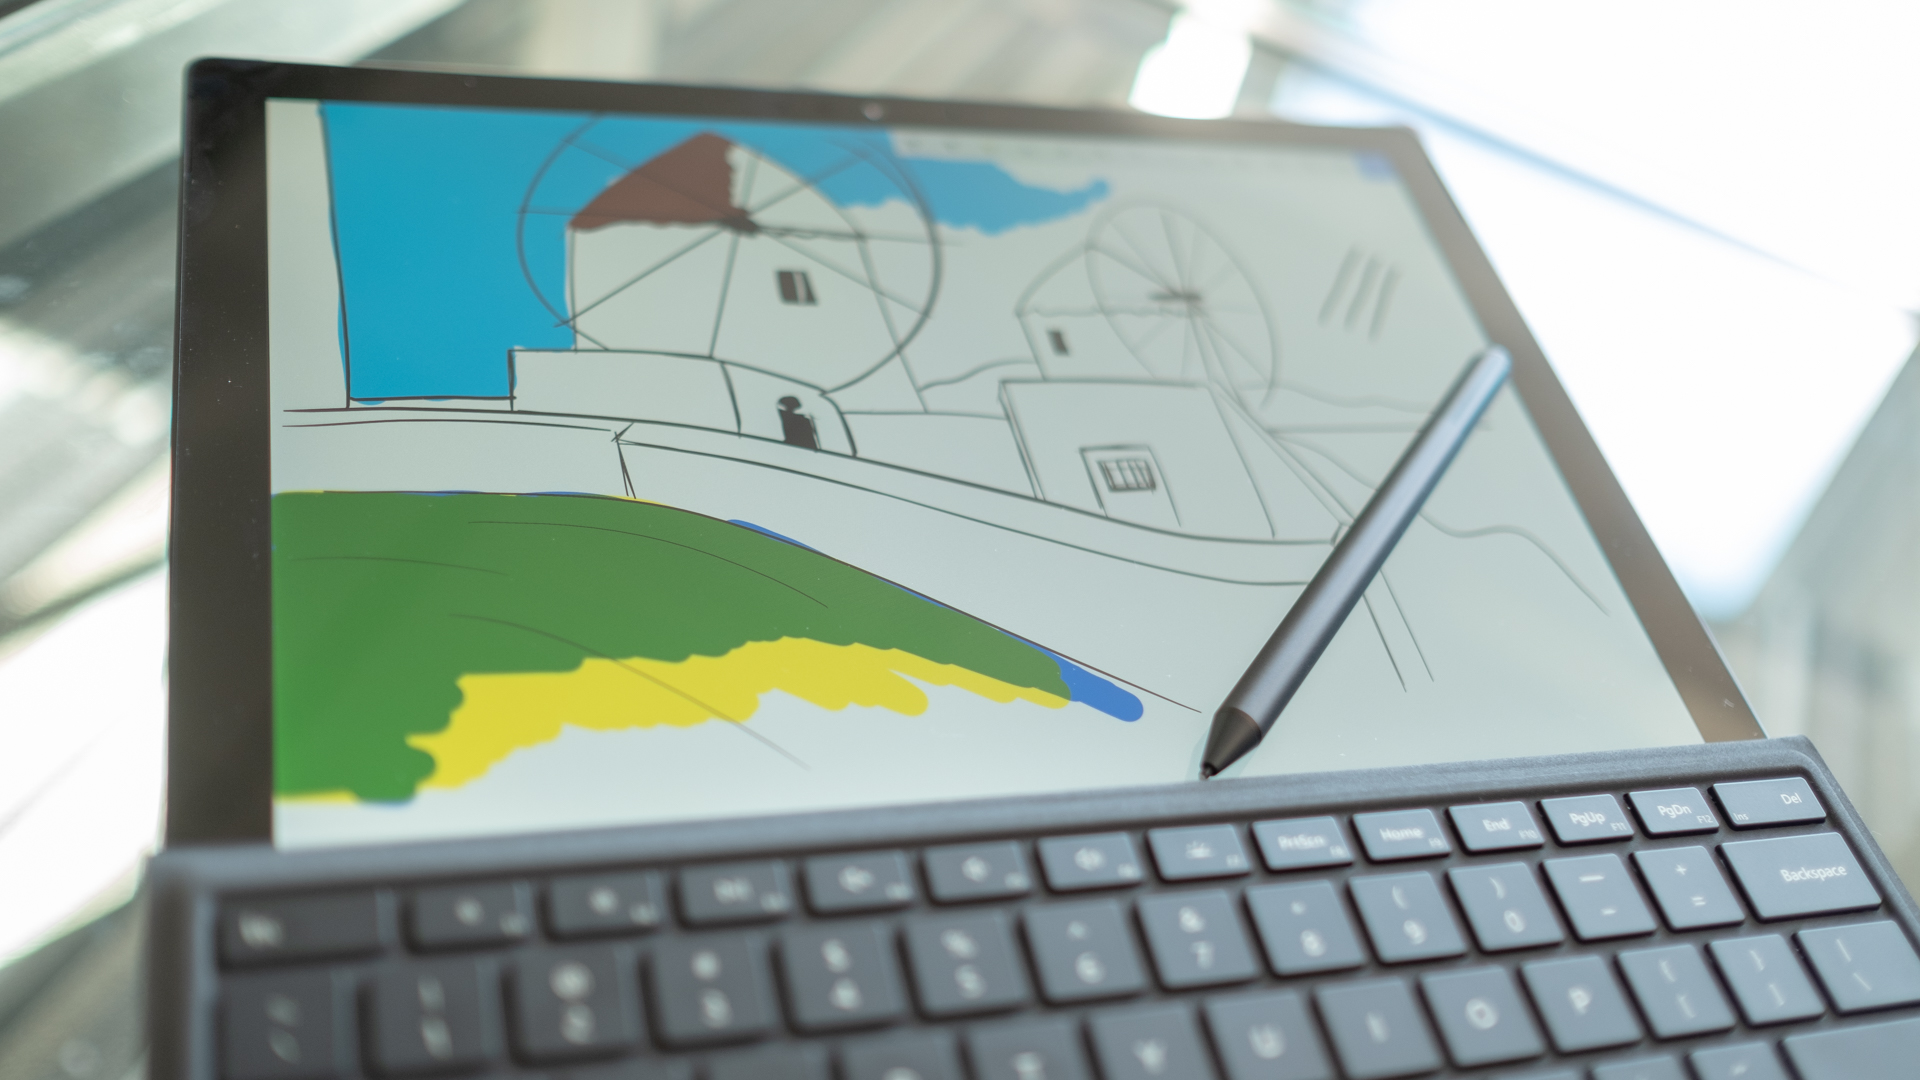 Surface Pro 6 display and pen